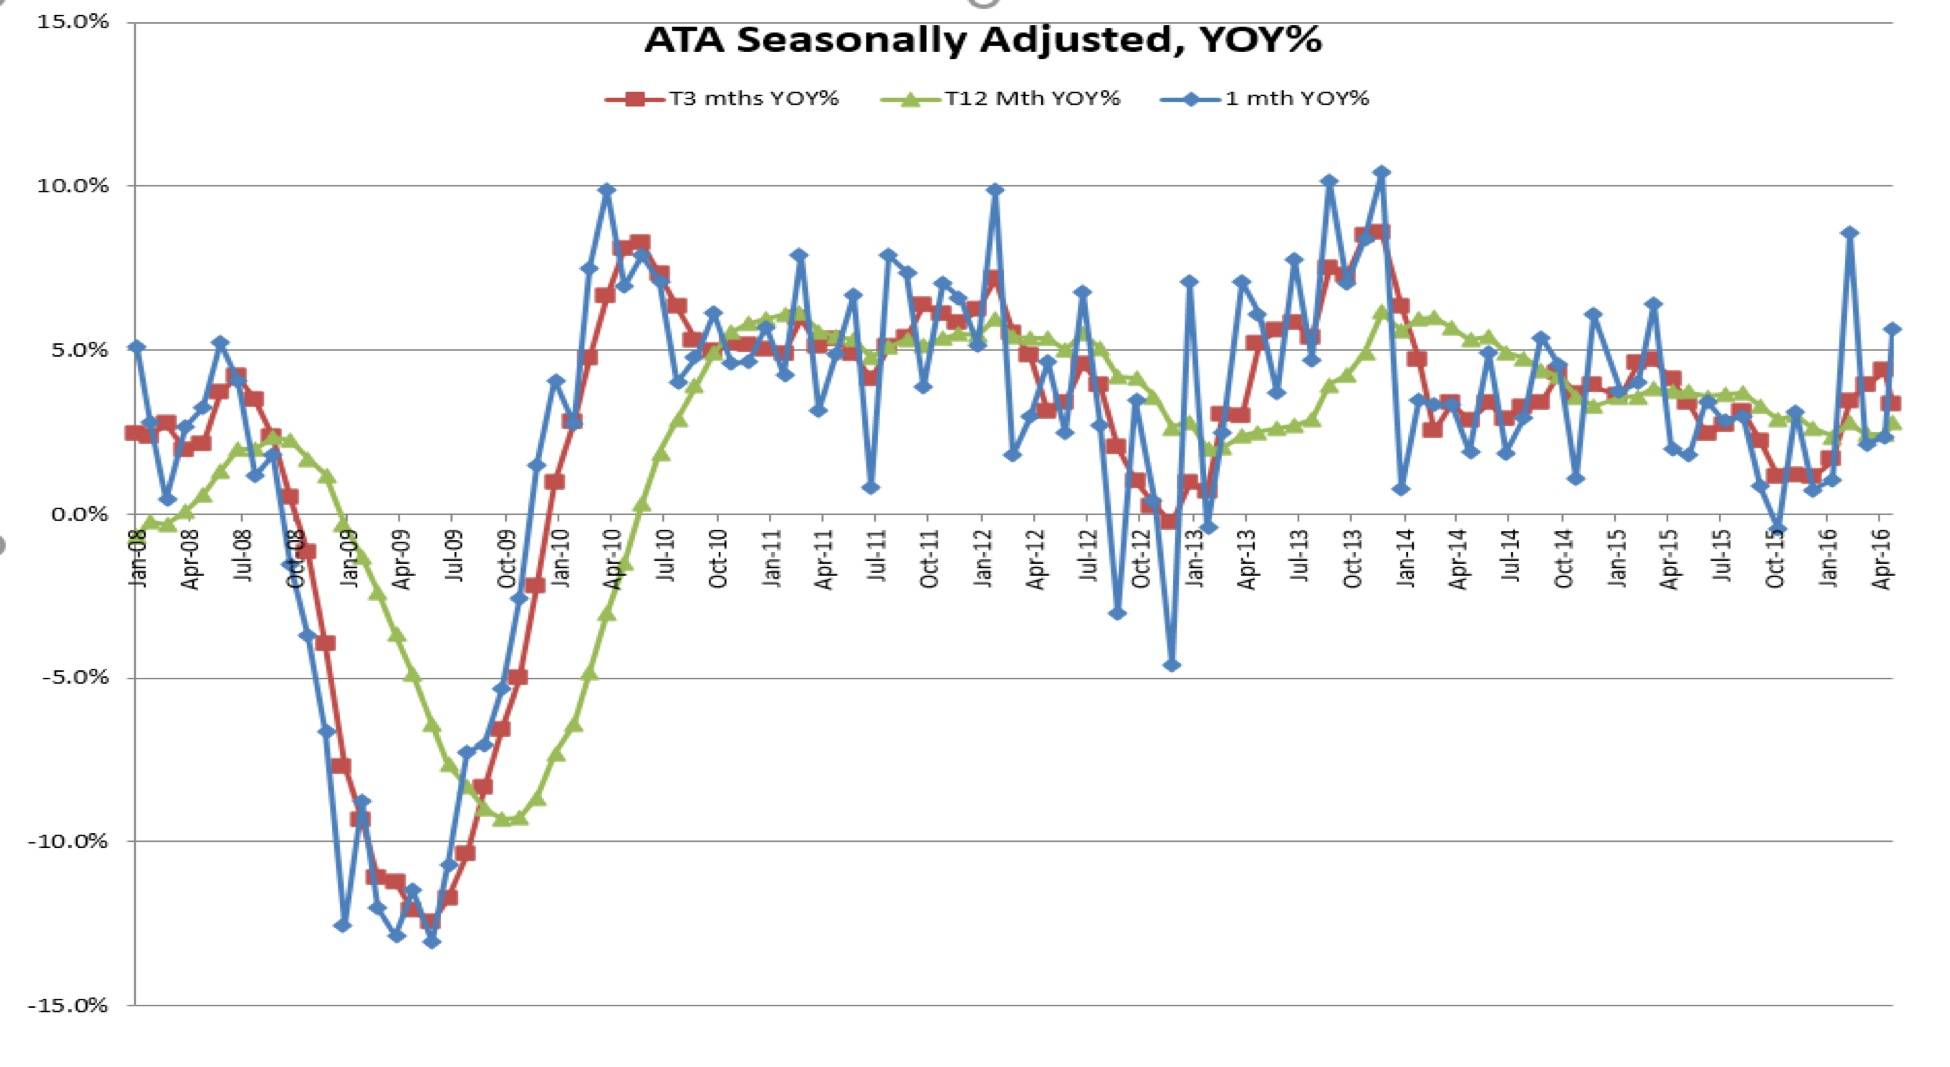 TLI_Edge Newsletter_Issue 14_ATA Adjusted_Seasonally.jpg